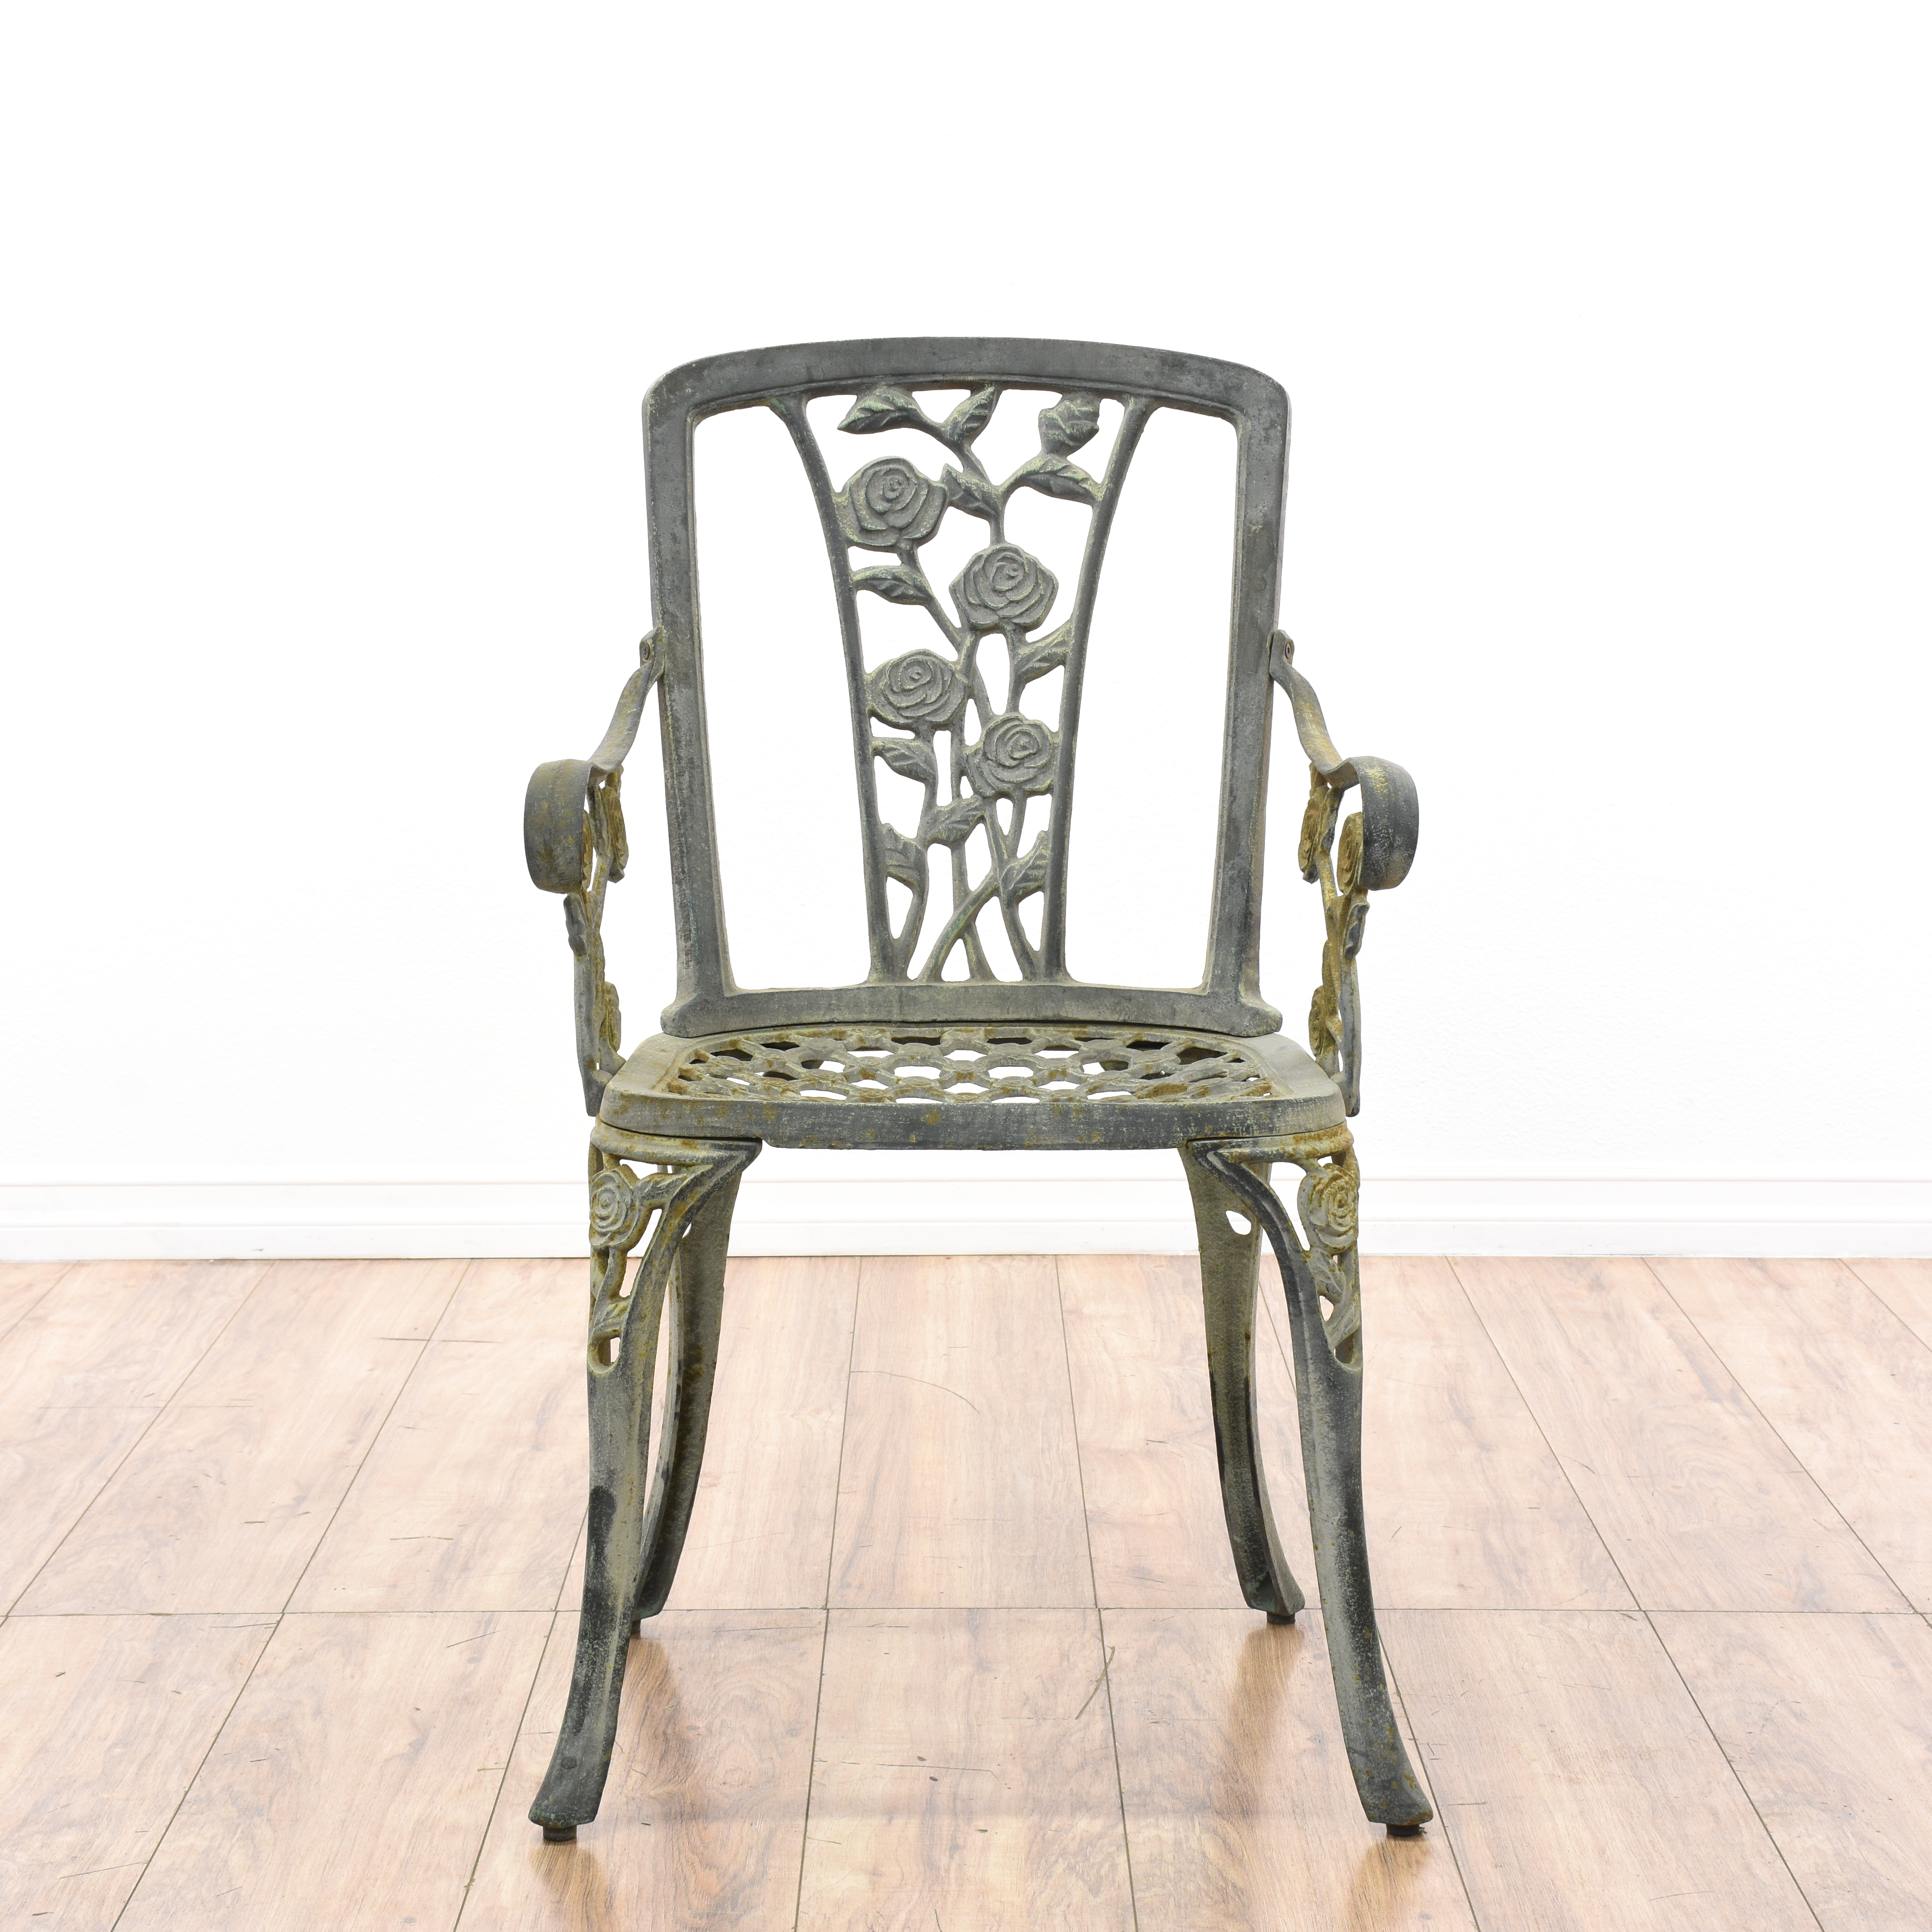 Pair Of Wrought Iron Patio Chairs Loveseat Vintage